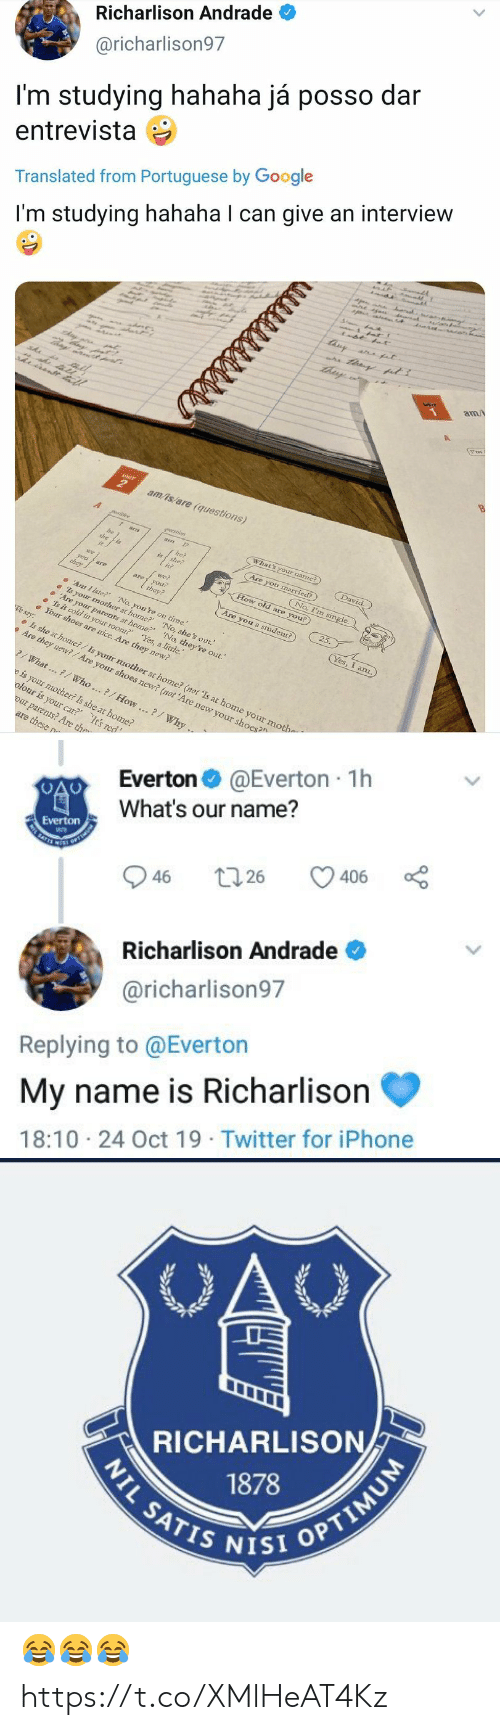 """Portuguese: Richarlison Andrade  @richarlison97  I'm studying hahaha já posso dar  entrevista  Translated from Portuguese by Google  r  I'm studying hahaha I can give an interview  tisy  a at  am/  UNIT  am/is/are (questions)  A  What's your namme?)  am  David.  he?  she?  Are you married?)  is  No, I'm single  we  How old are you?  nai  aoyou  they?  they  25.  Are you a student?)  Ar I late? No, you're on time.  s your mother at home? No, she's out.  Are yoar parents at home?' 'No, they're out.""""  Is it cold in your room? Yes, a little.  Your shoes are mice. Are they new?  Yes, I anz.  We say:  Is she at home?/Is your mother at home? (not 'Is at home your mothe  Are they new?/Are your shoes new? (not 'Are new your shoes?  What...7/ Who..?/How..?/Why ..  e is your mother? Is she at home?  olour is your car? It's red  our parents? Are the  are these n  है ह।   @Everton 1h  Everton  What's our name?  Everton  SATES  406  26  46  Richarlison Andrade  @richarlison97  Replying to @Everton  My name is Richarlison  18:10 24 Oct 19 Twitter for iPhone  >   OAC  RICHARLISON  1878  NIL SATIS NISI OPTIMUM 😂😂😂 https://t.co/XMlHeAT4Kz"""